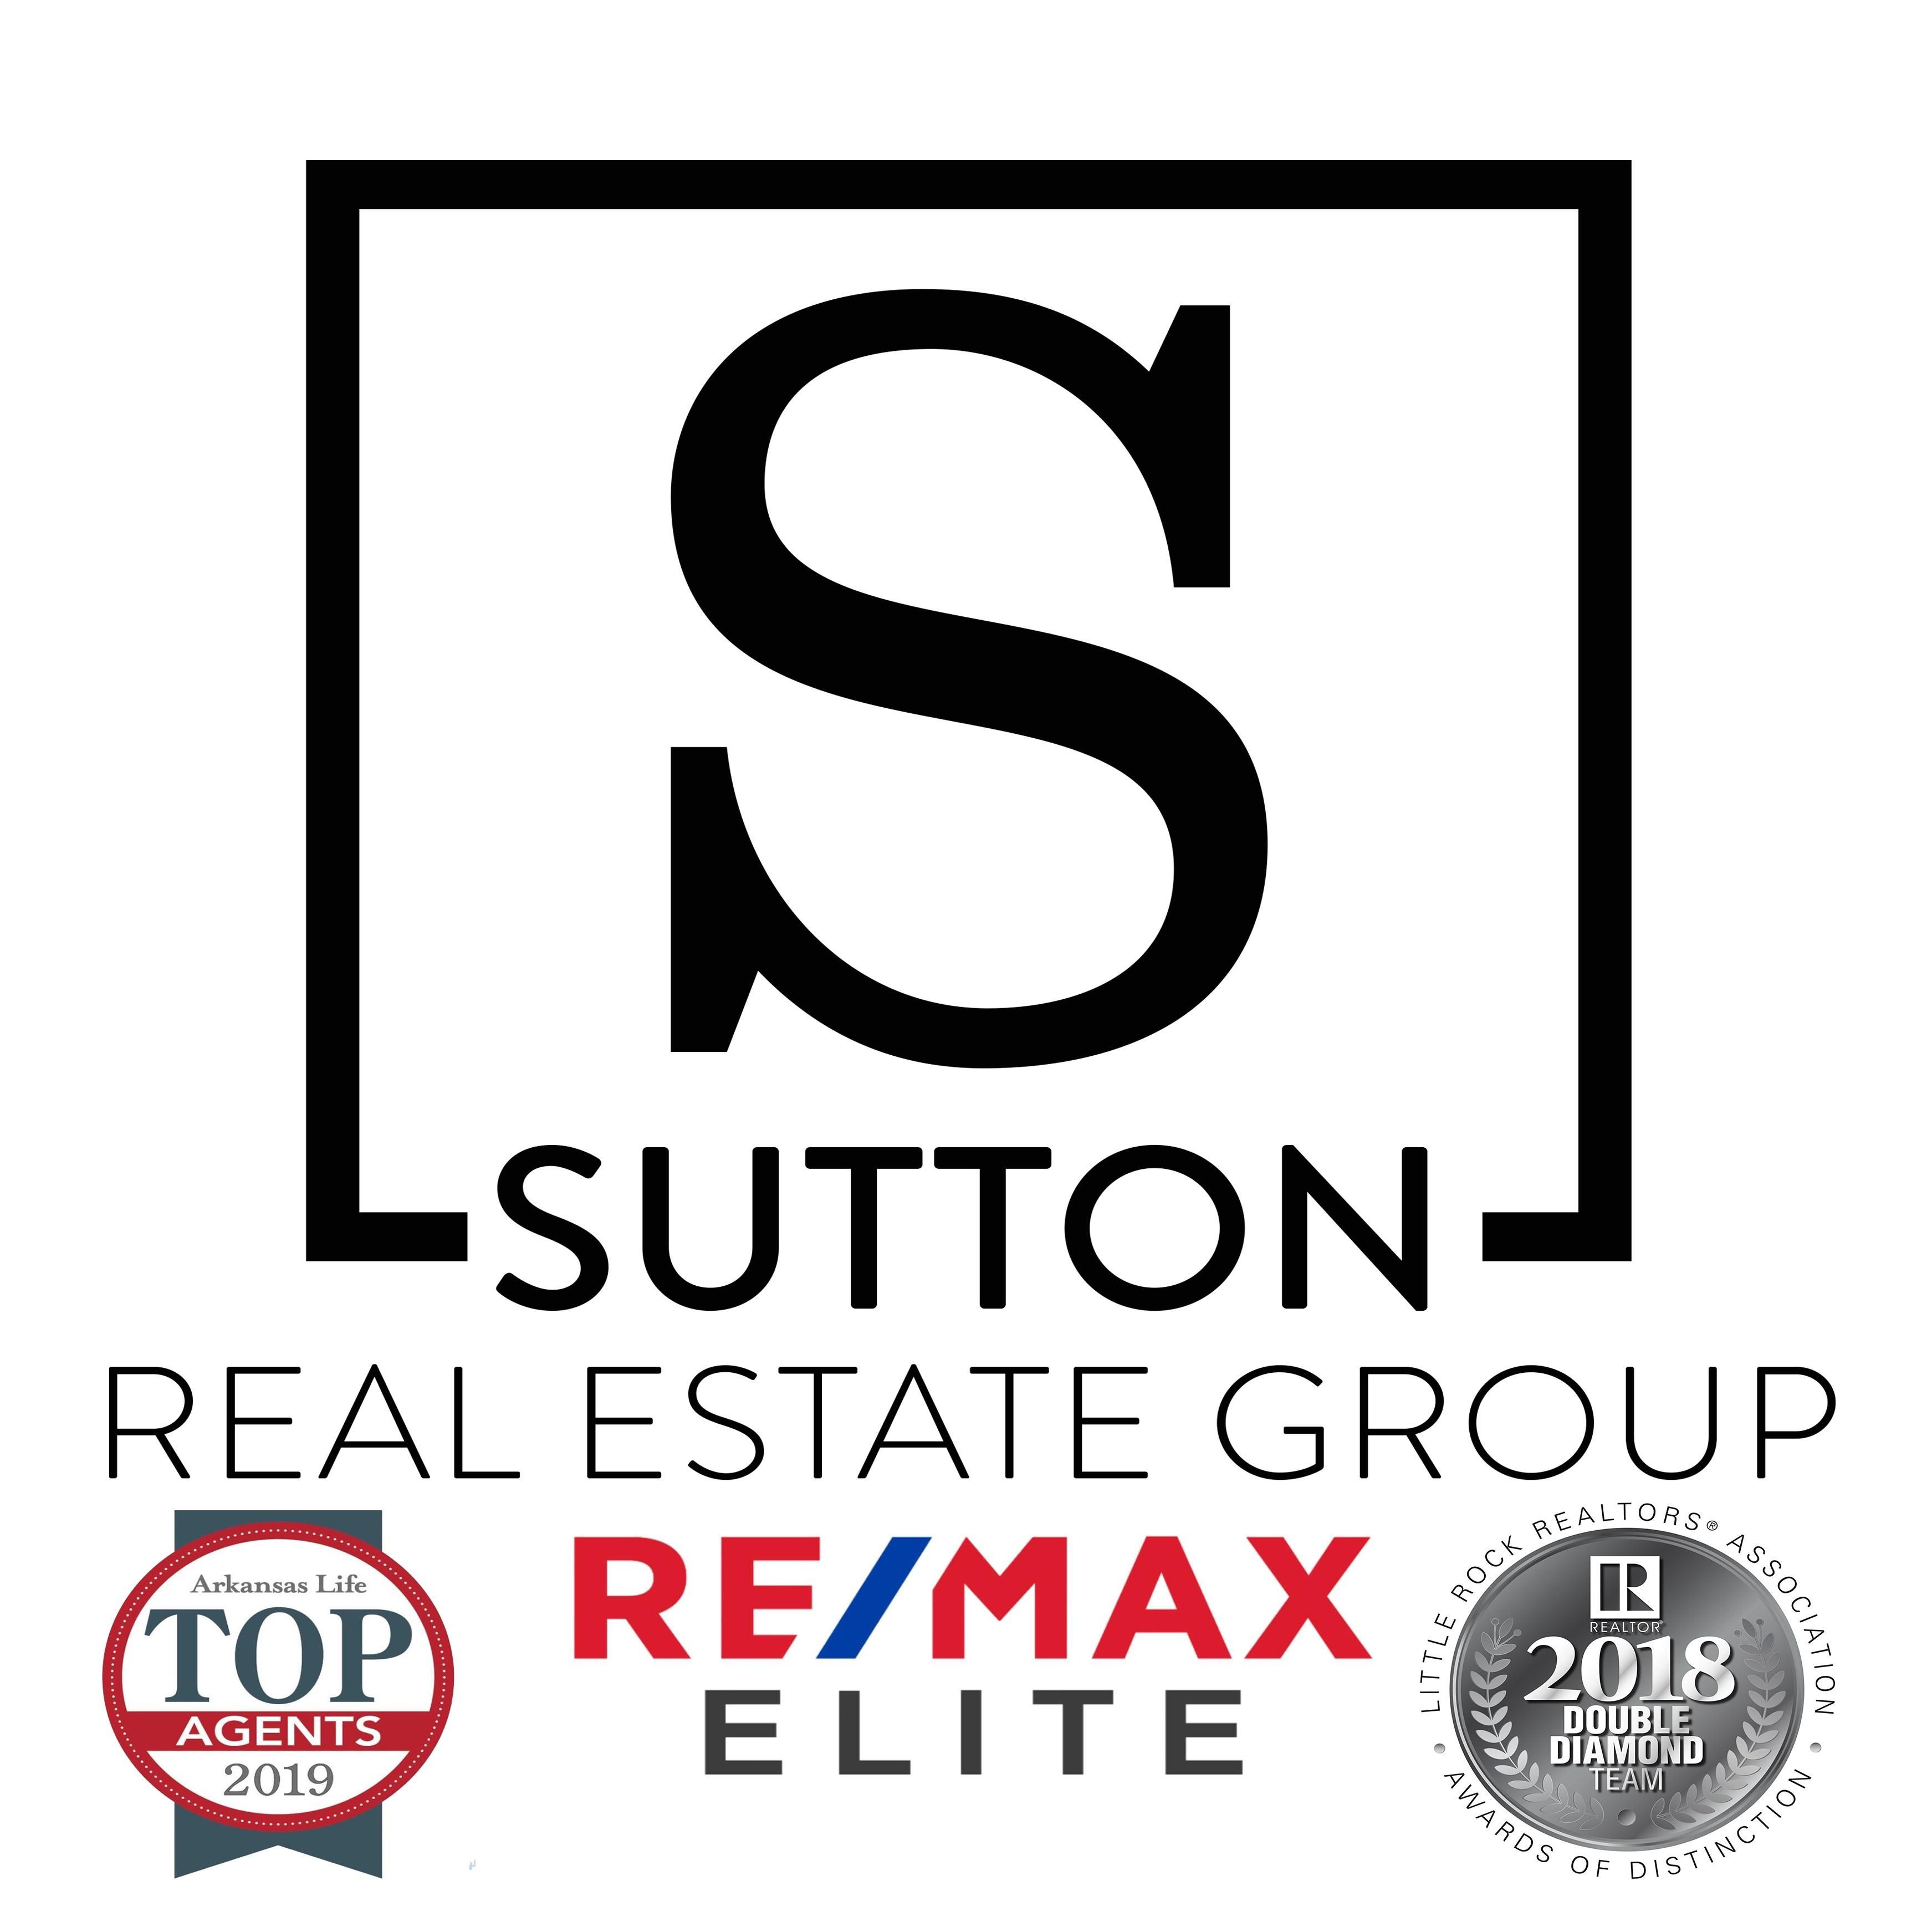 The Sutton Group with RE/MAX Elite - Little Rock, AR 72212 - (501)658-7299 | ShowMeLocal.com